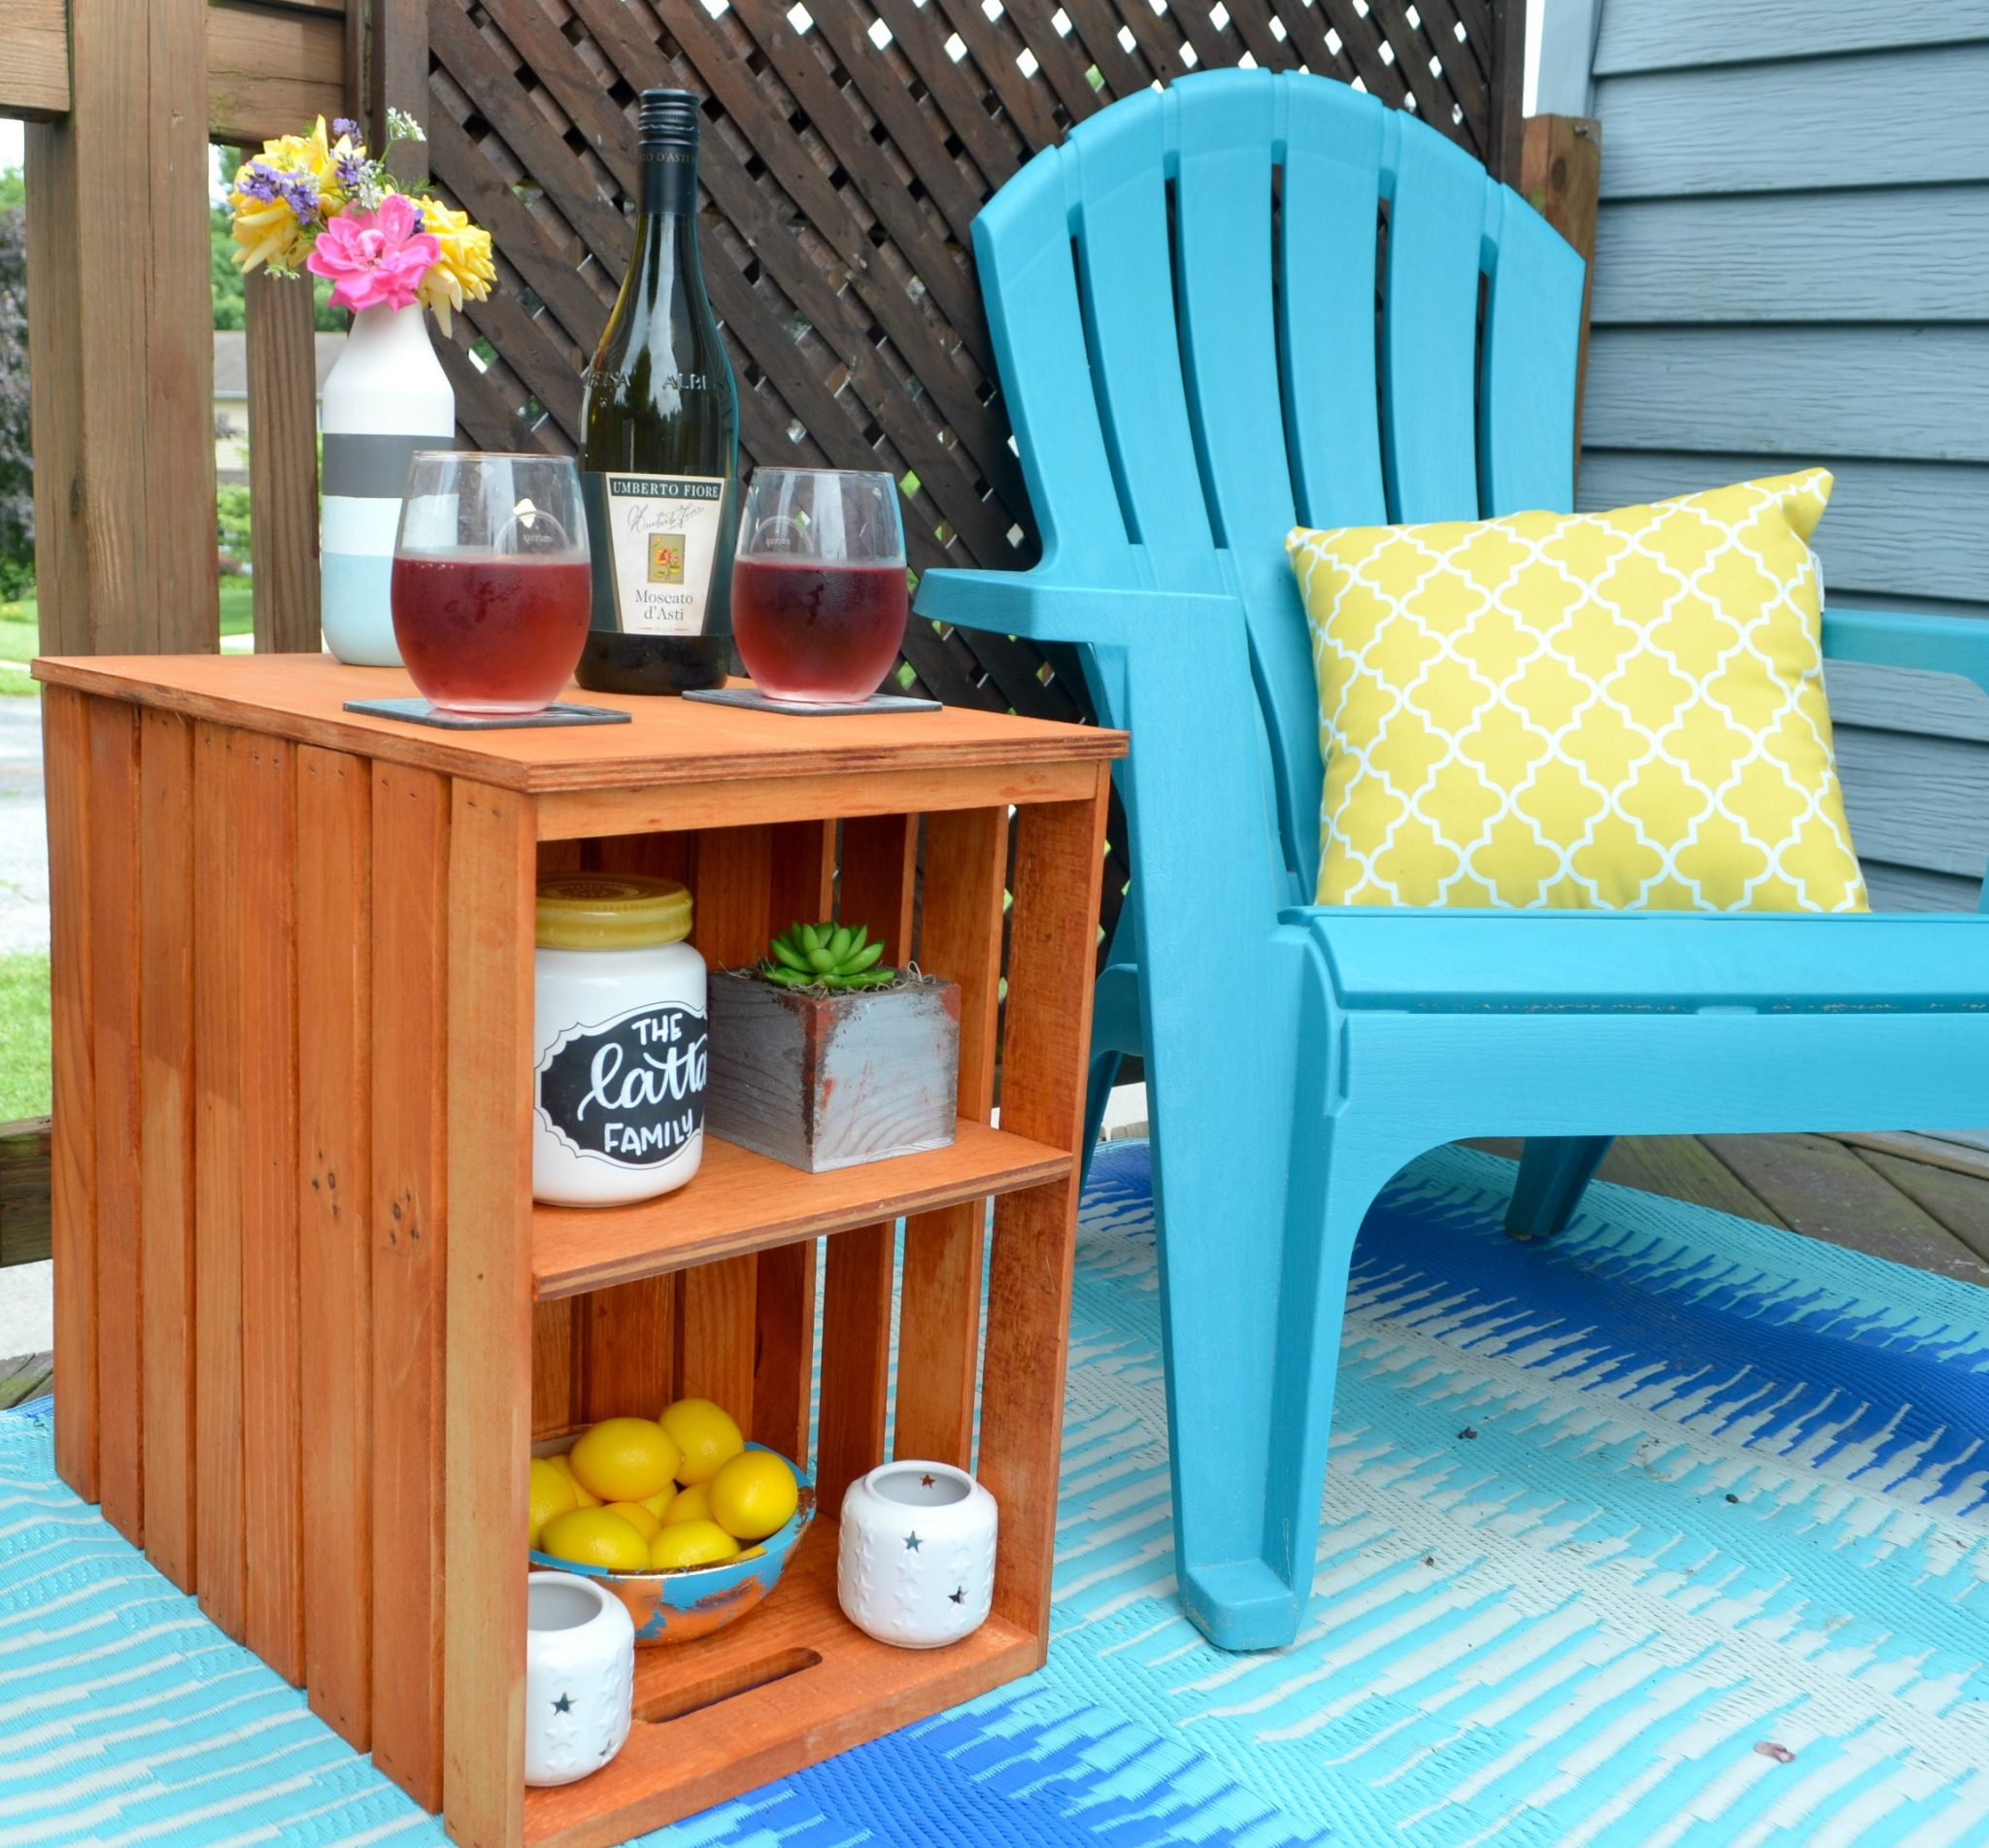 Magnificent Diy Wooden Crate Outdoor Table Amy Latta Creations Download Free Architecture Designs Rallybritishbridgeorg